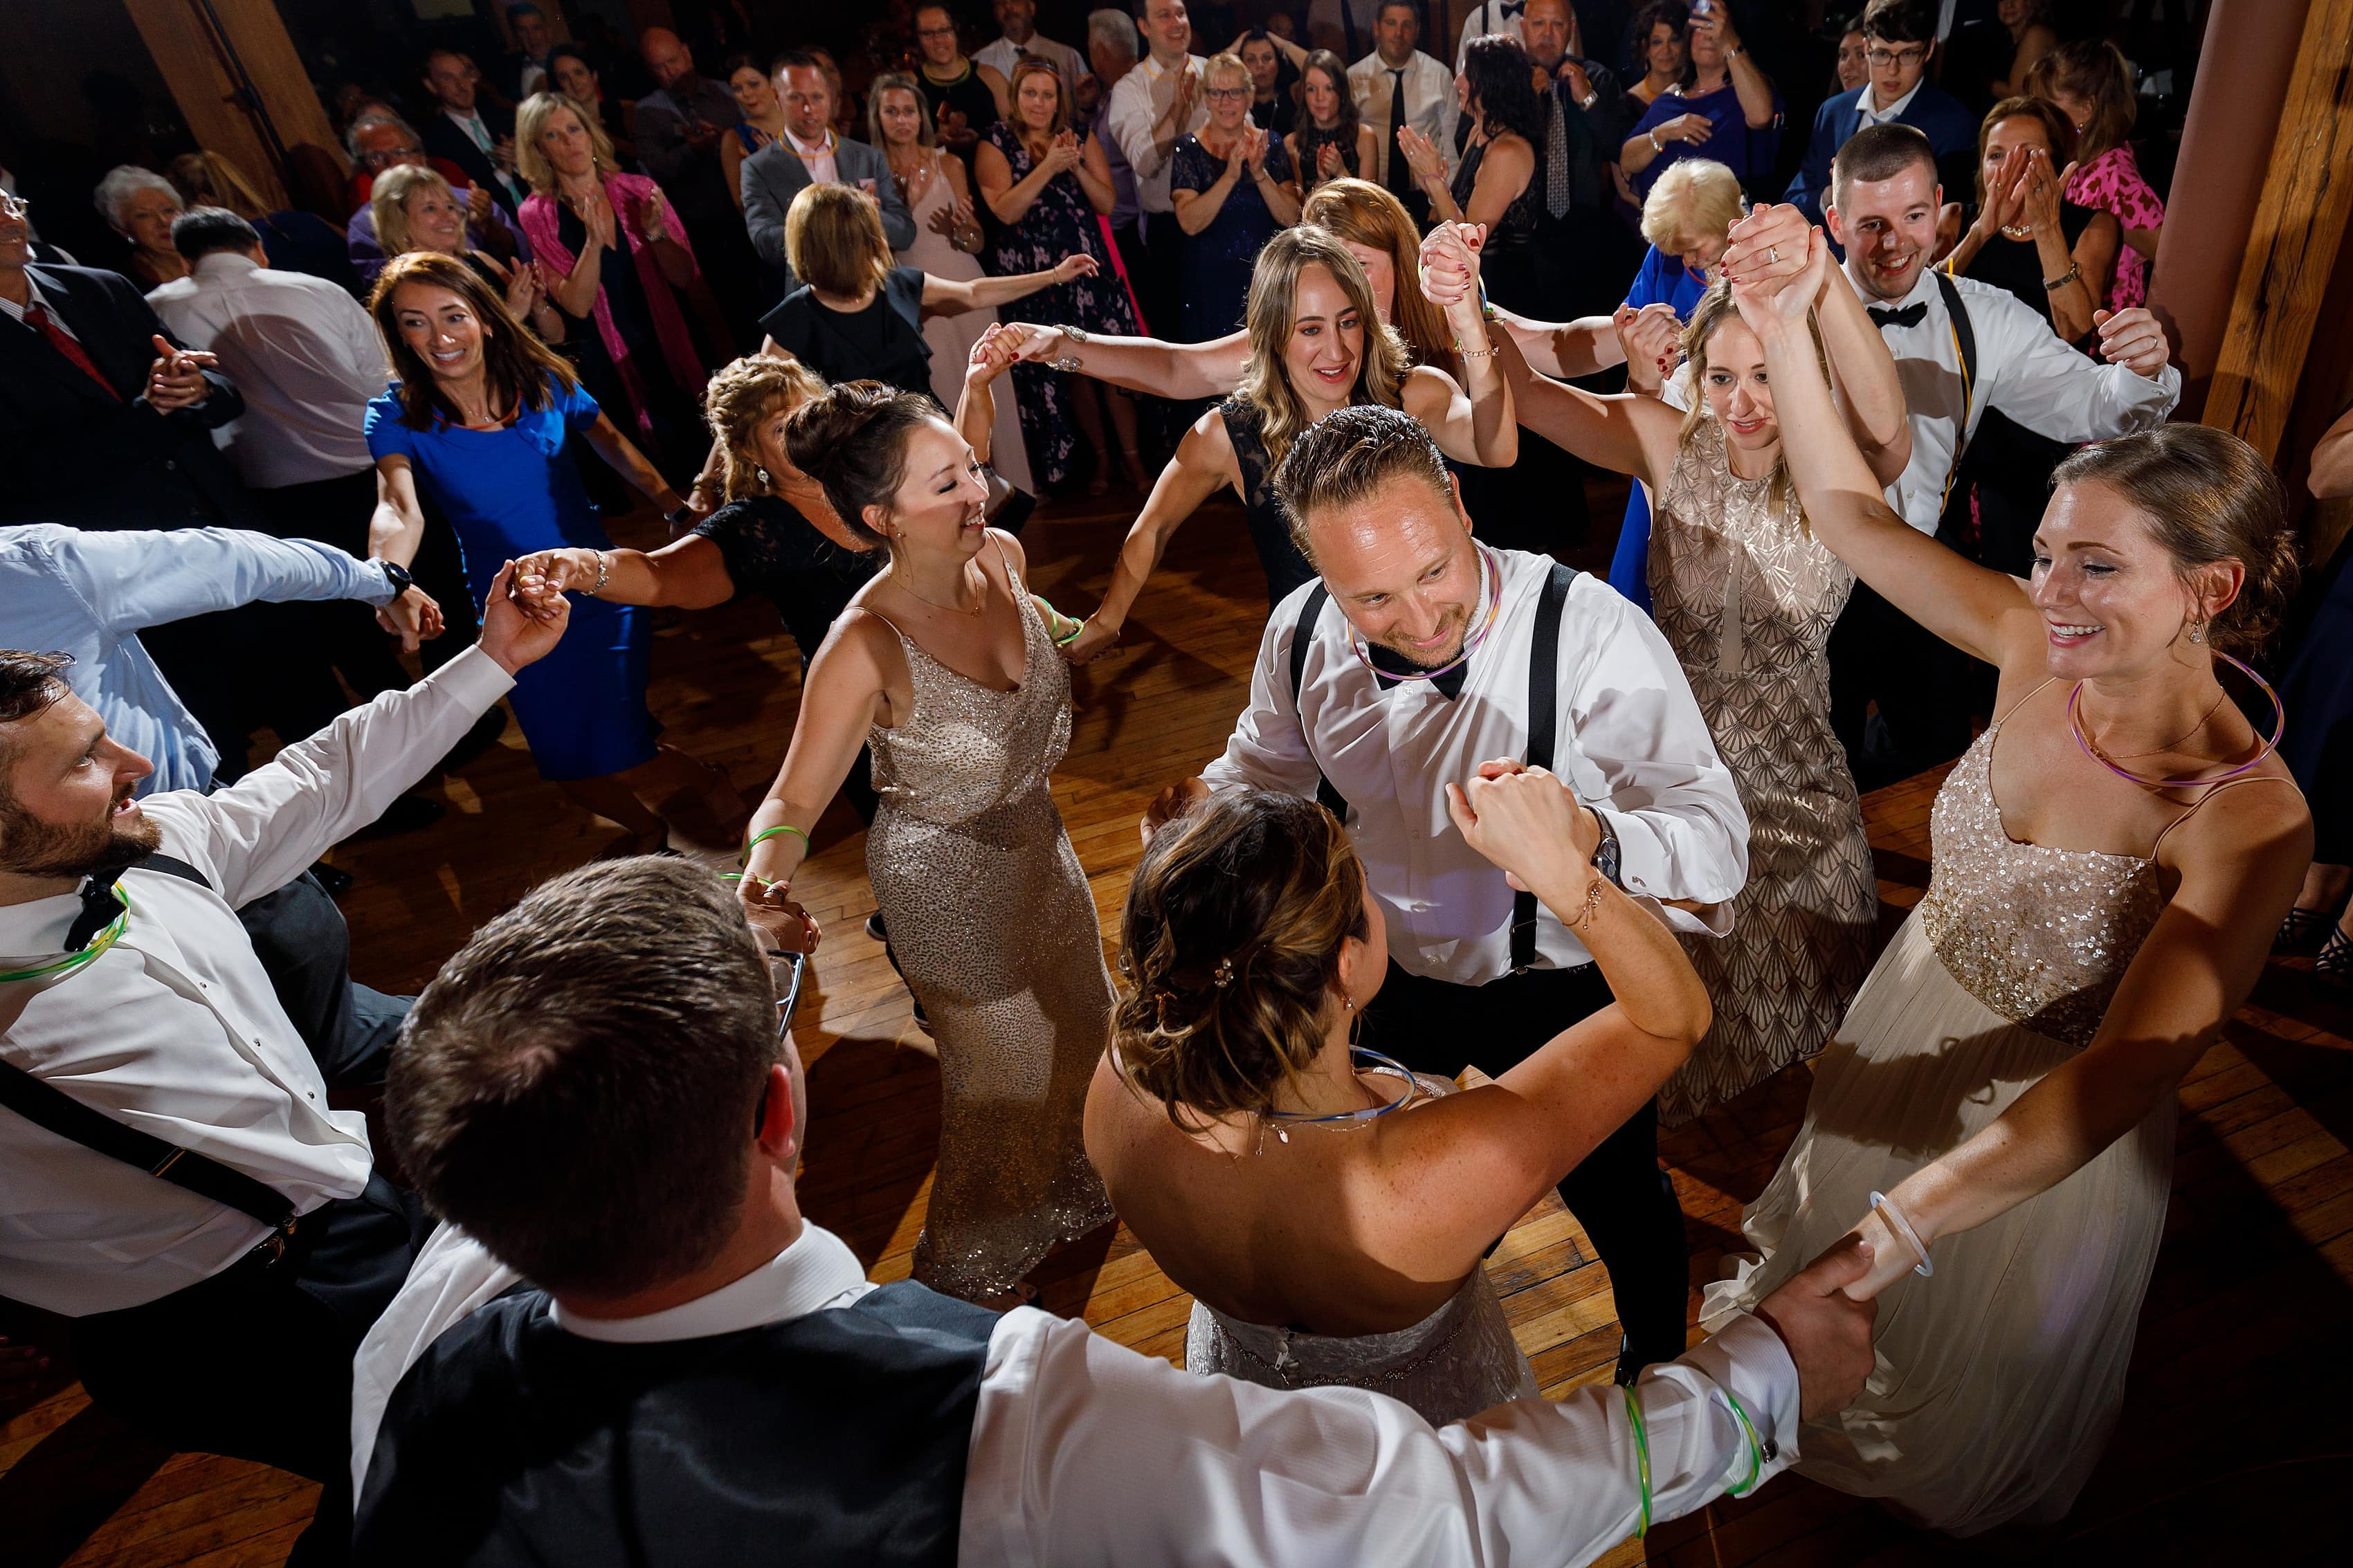 wedding guests dance around the couple during wedding reception at Bridgeport Art Center Sculpture Garden in Chicago